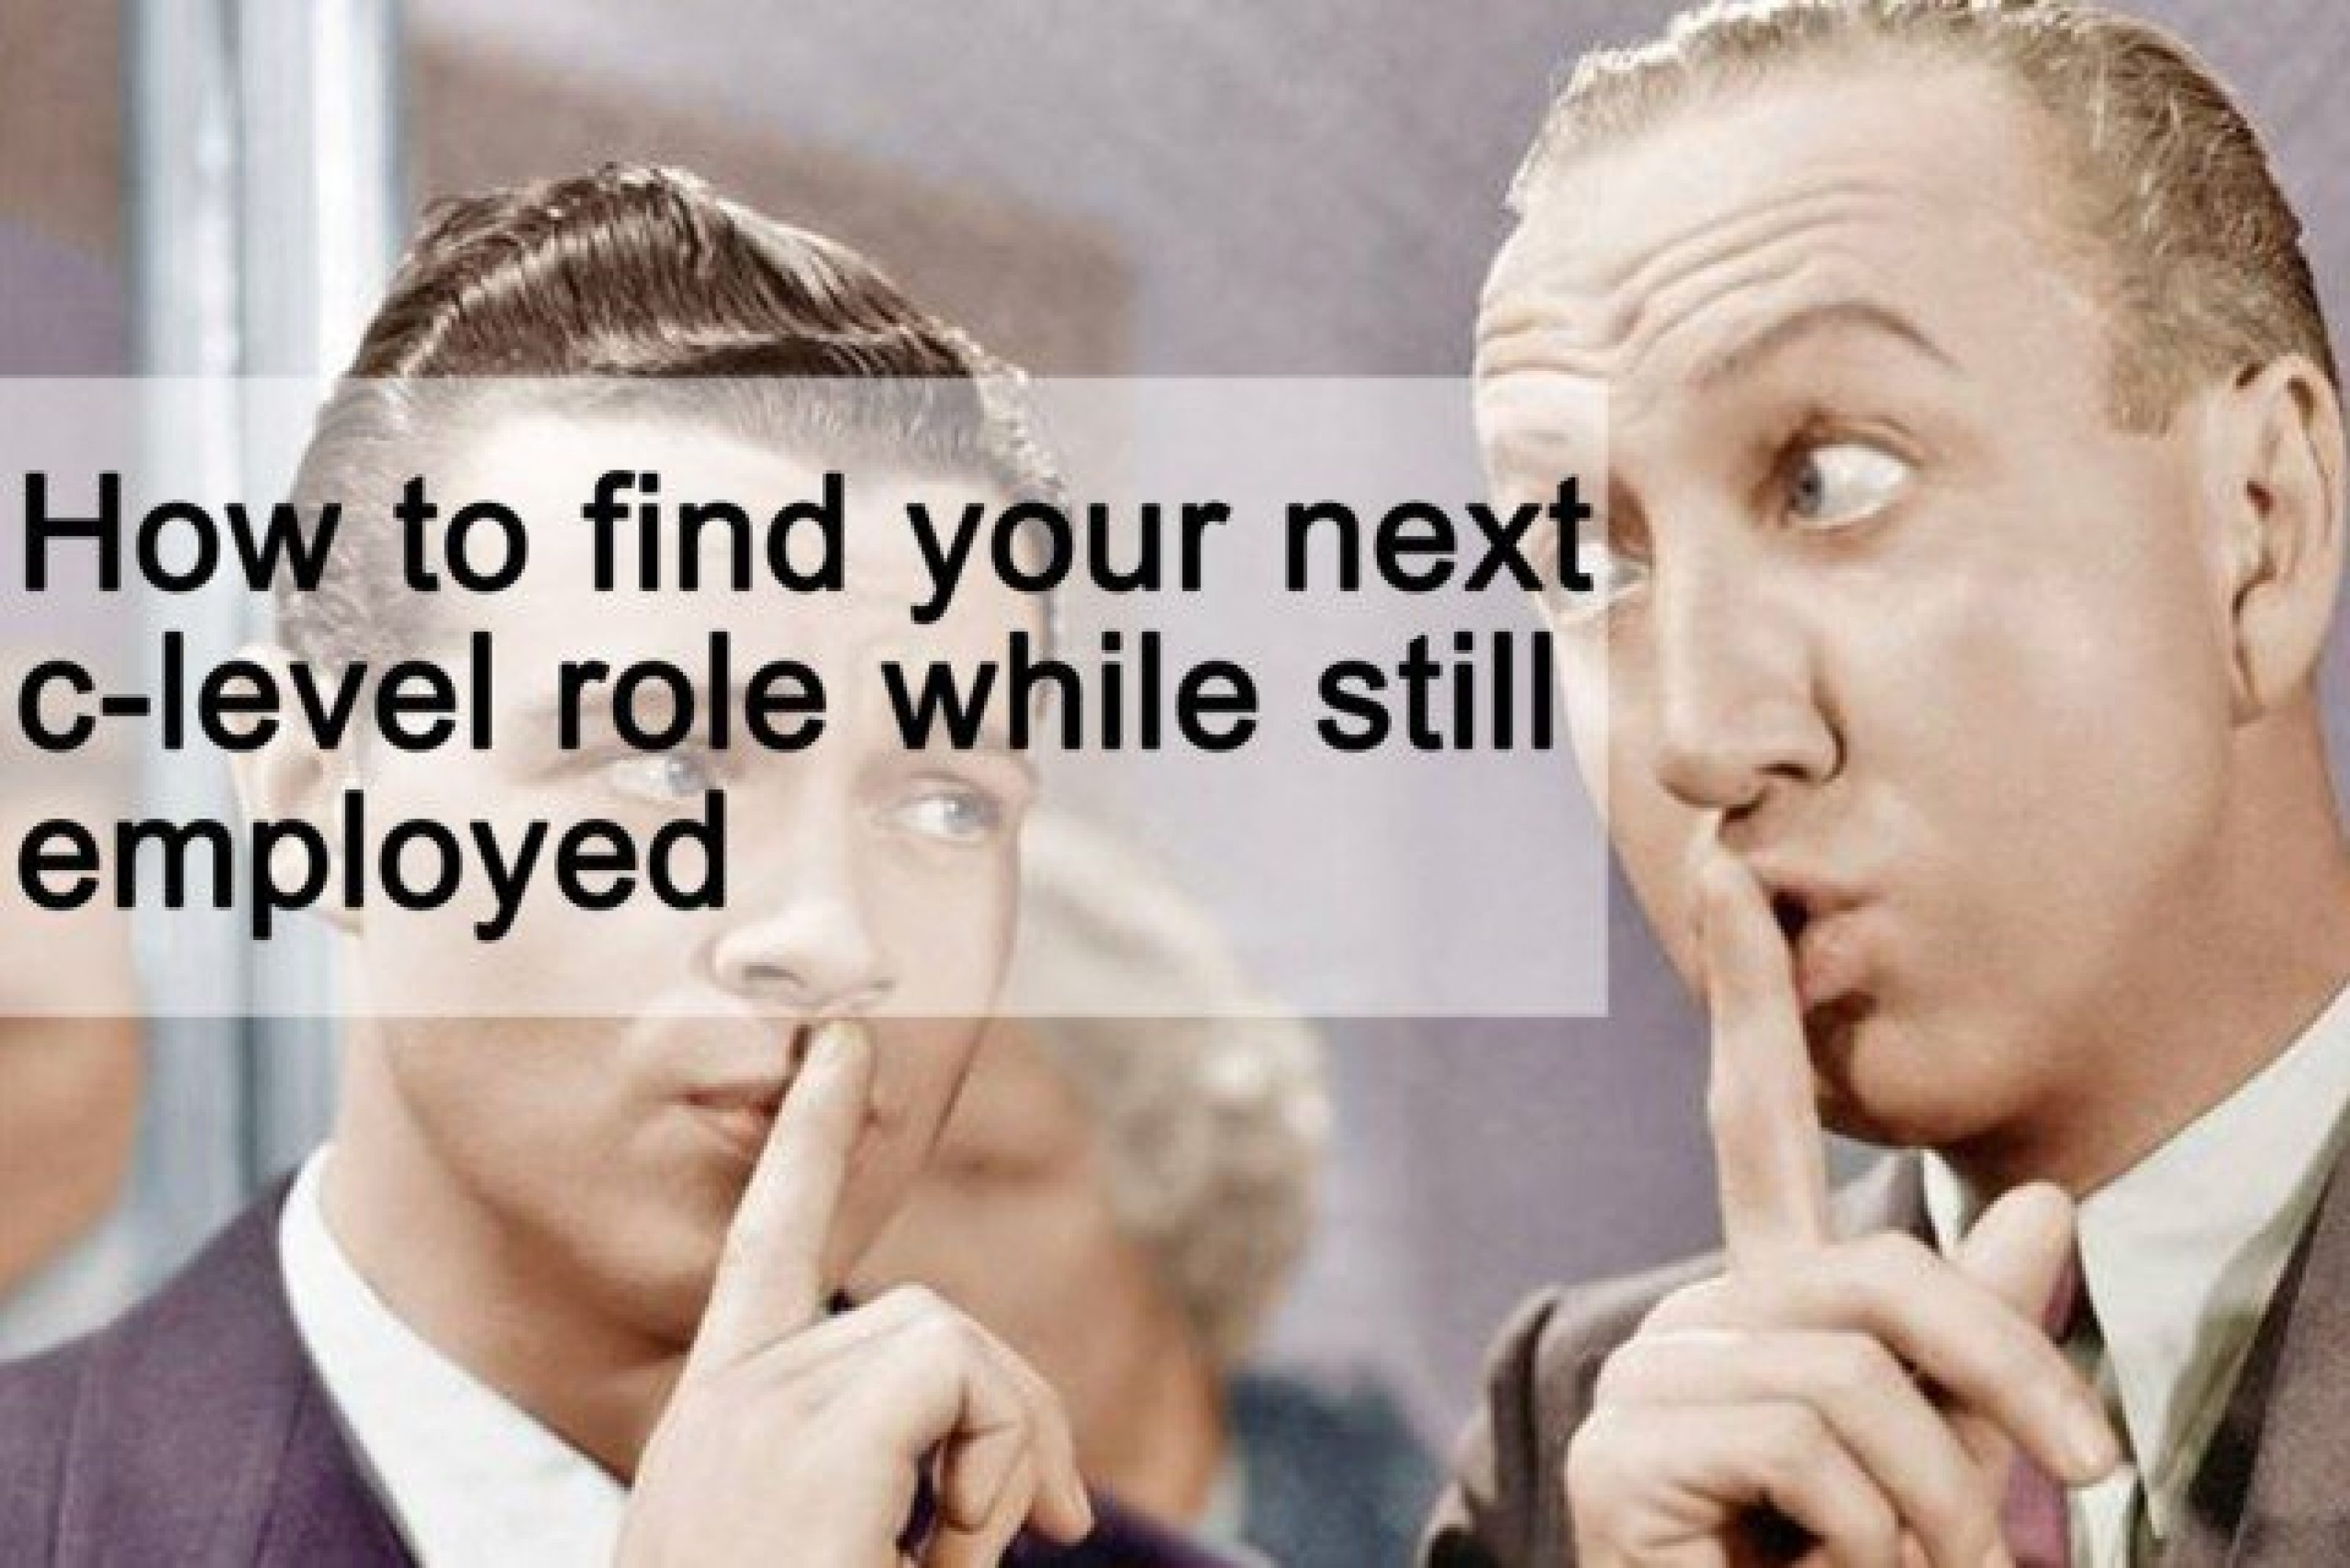 How to find your next c-level role while still employed